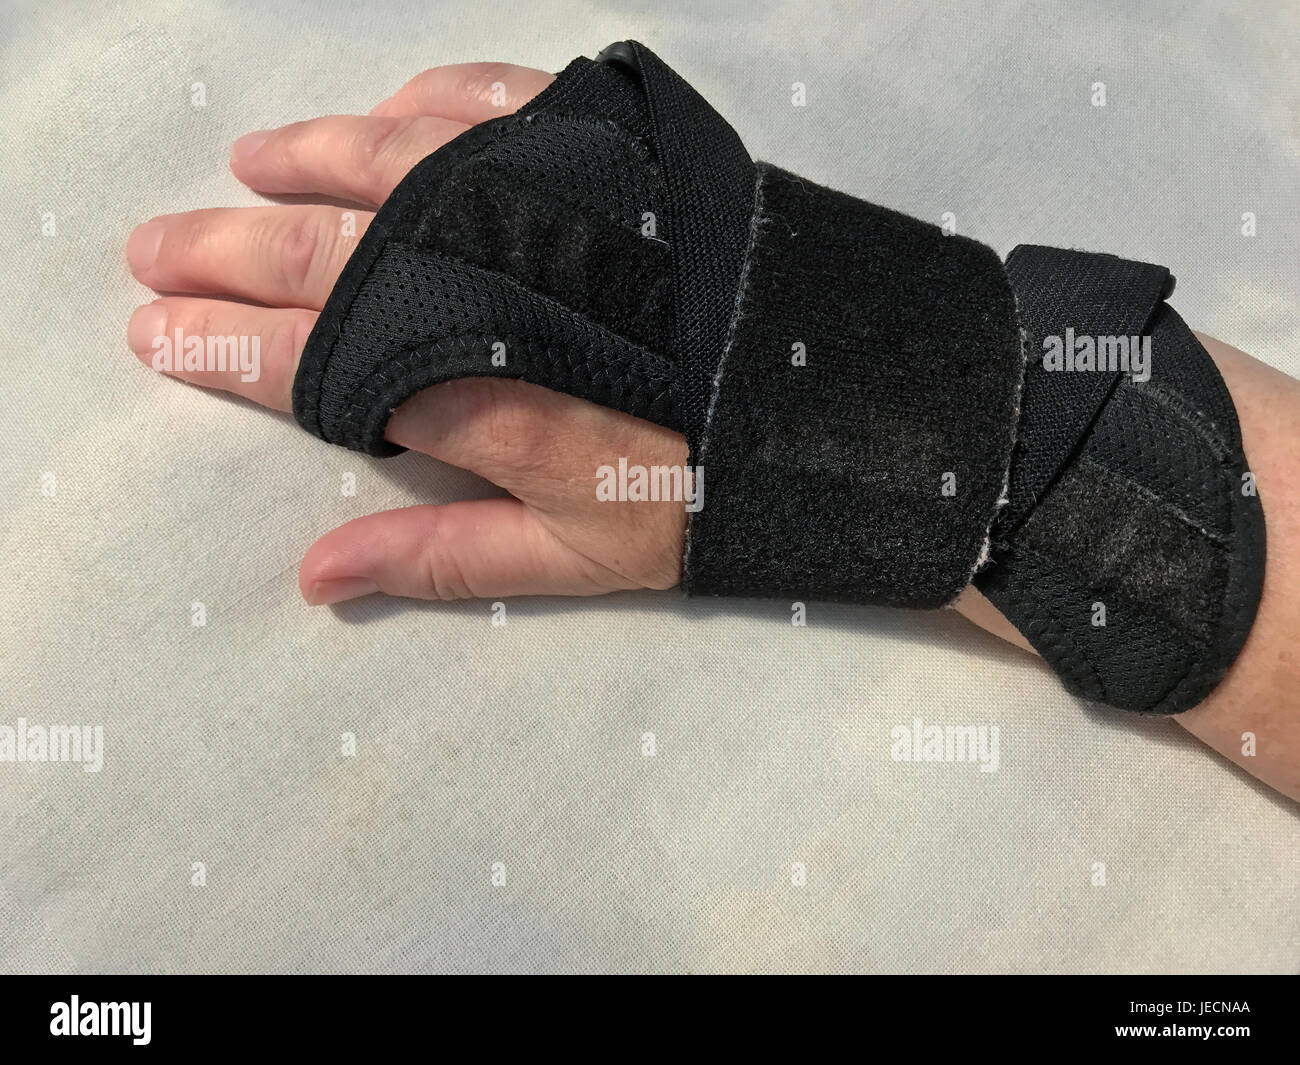 Right hand in hand cuff outside - Stock Image